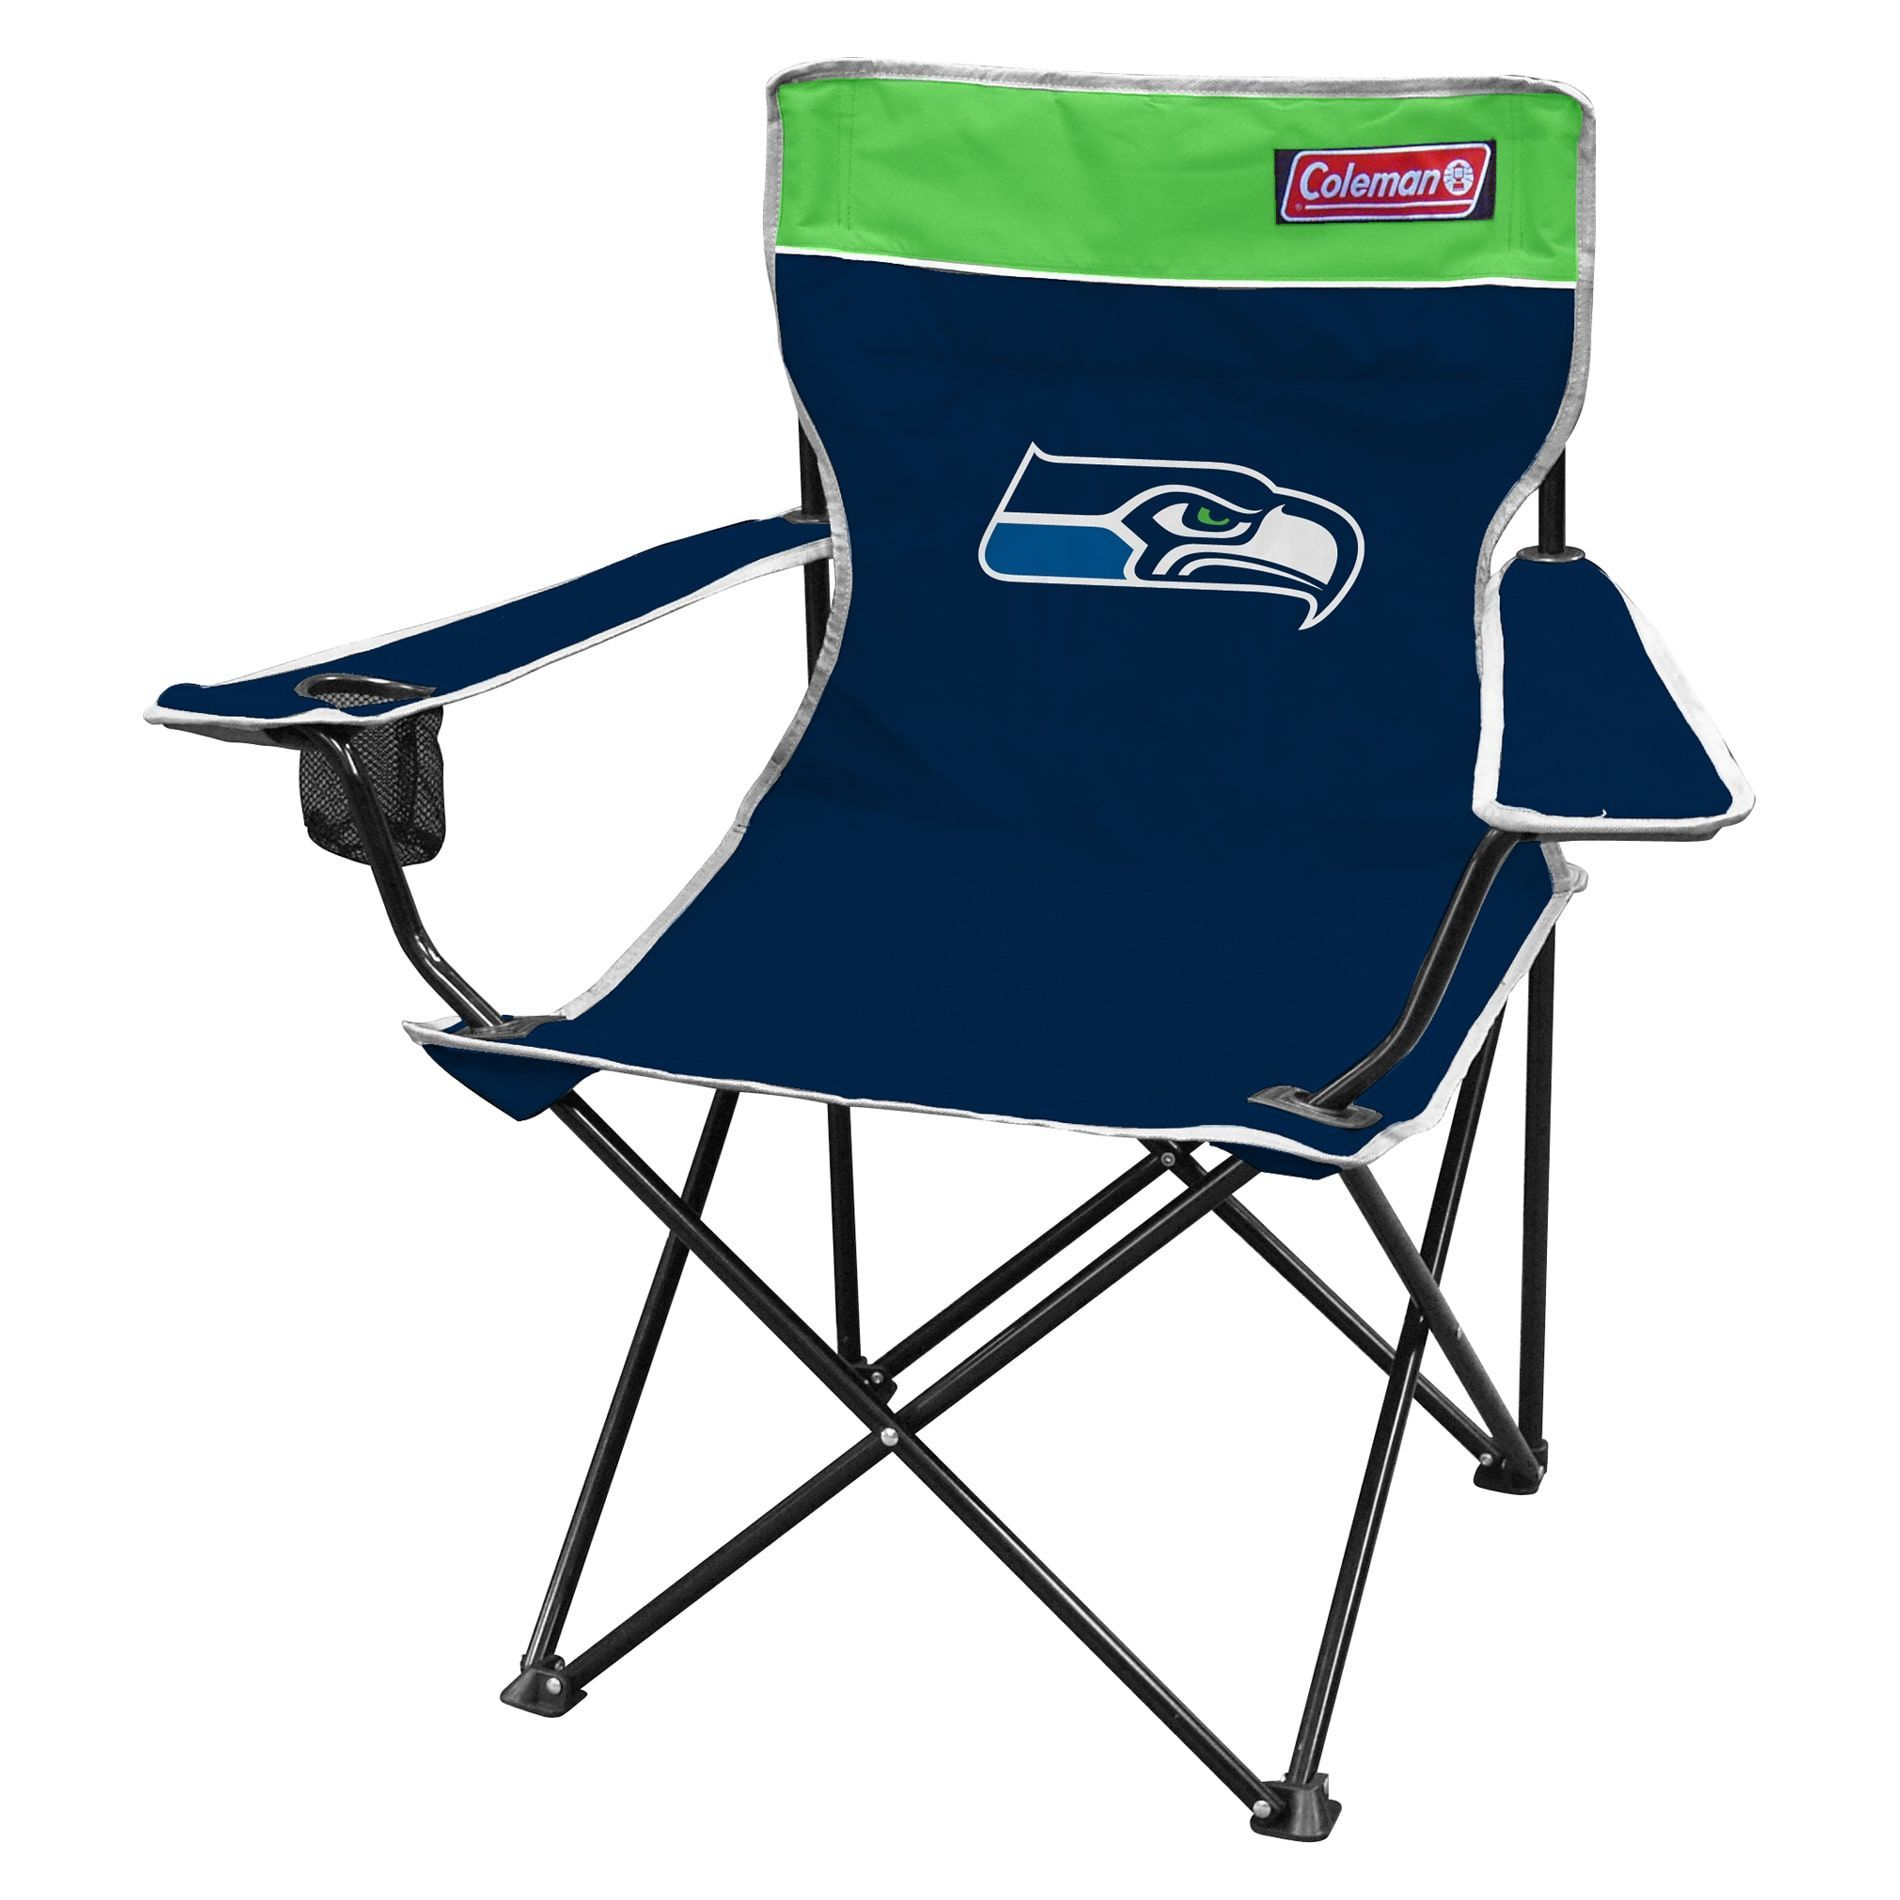 patriots tag seahawks furniture bowl super melod football jersey a cookies